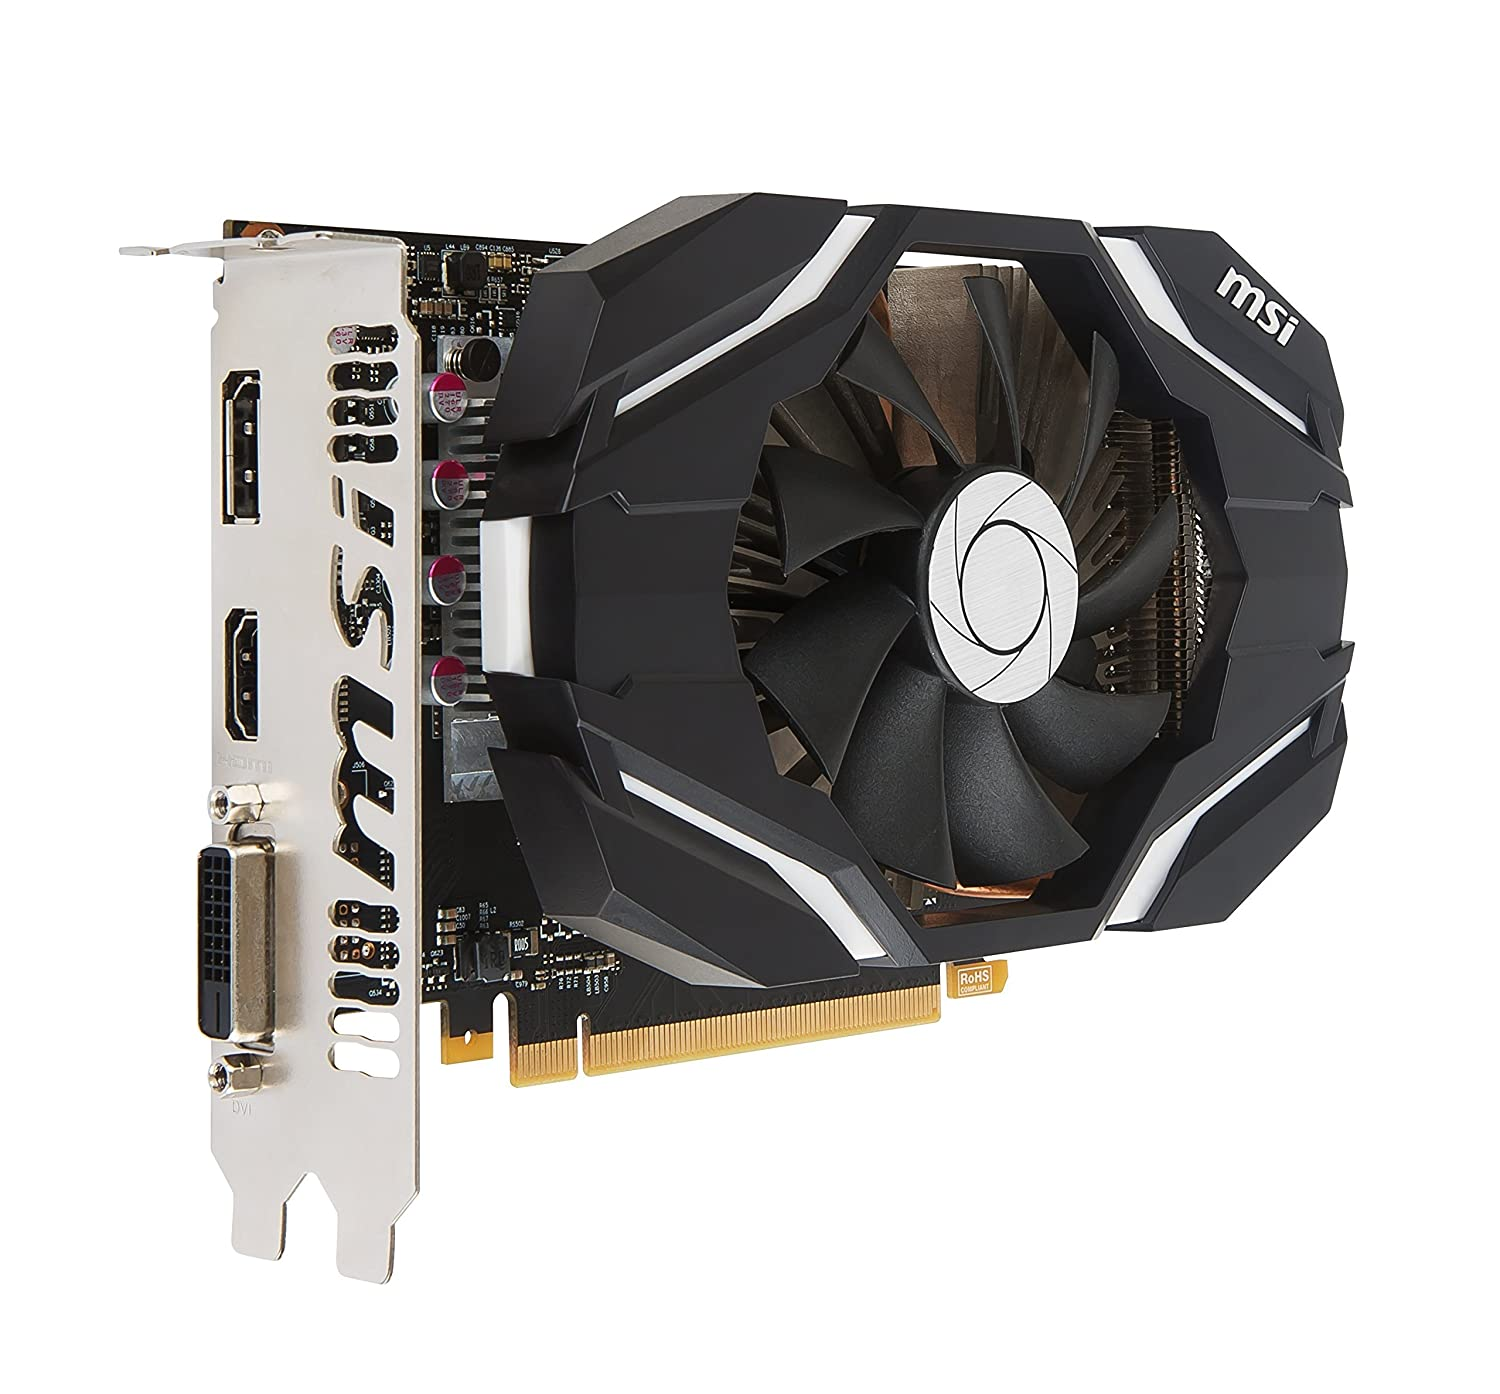 Amazon.com: MSI Video Card Graphic Cards G1060GX6SC tarjeta ...